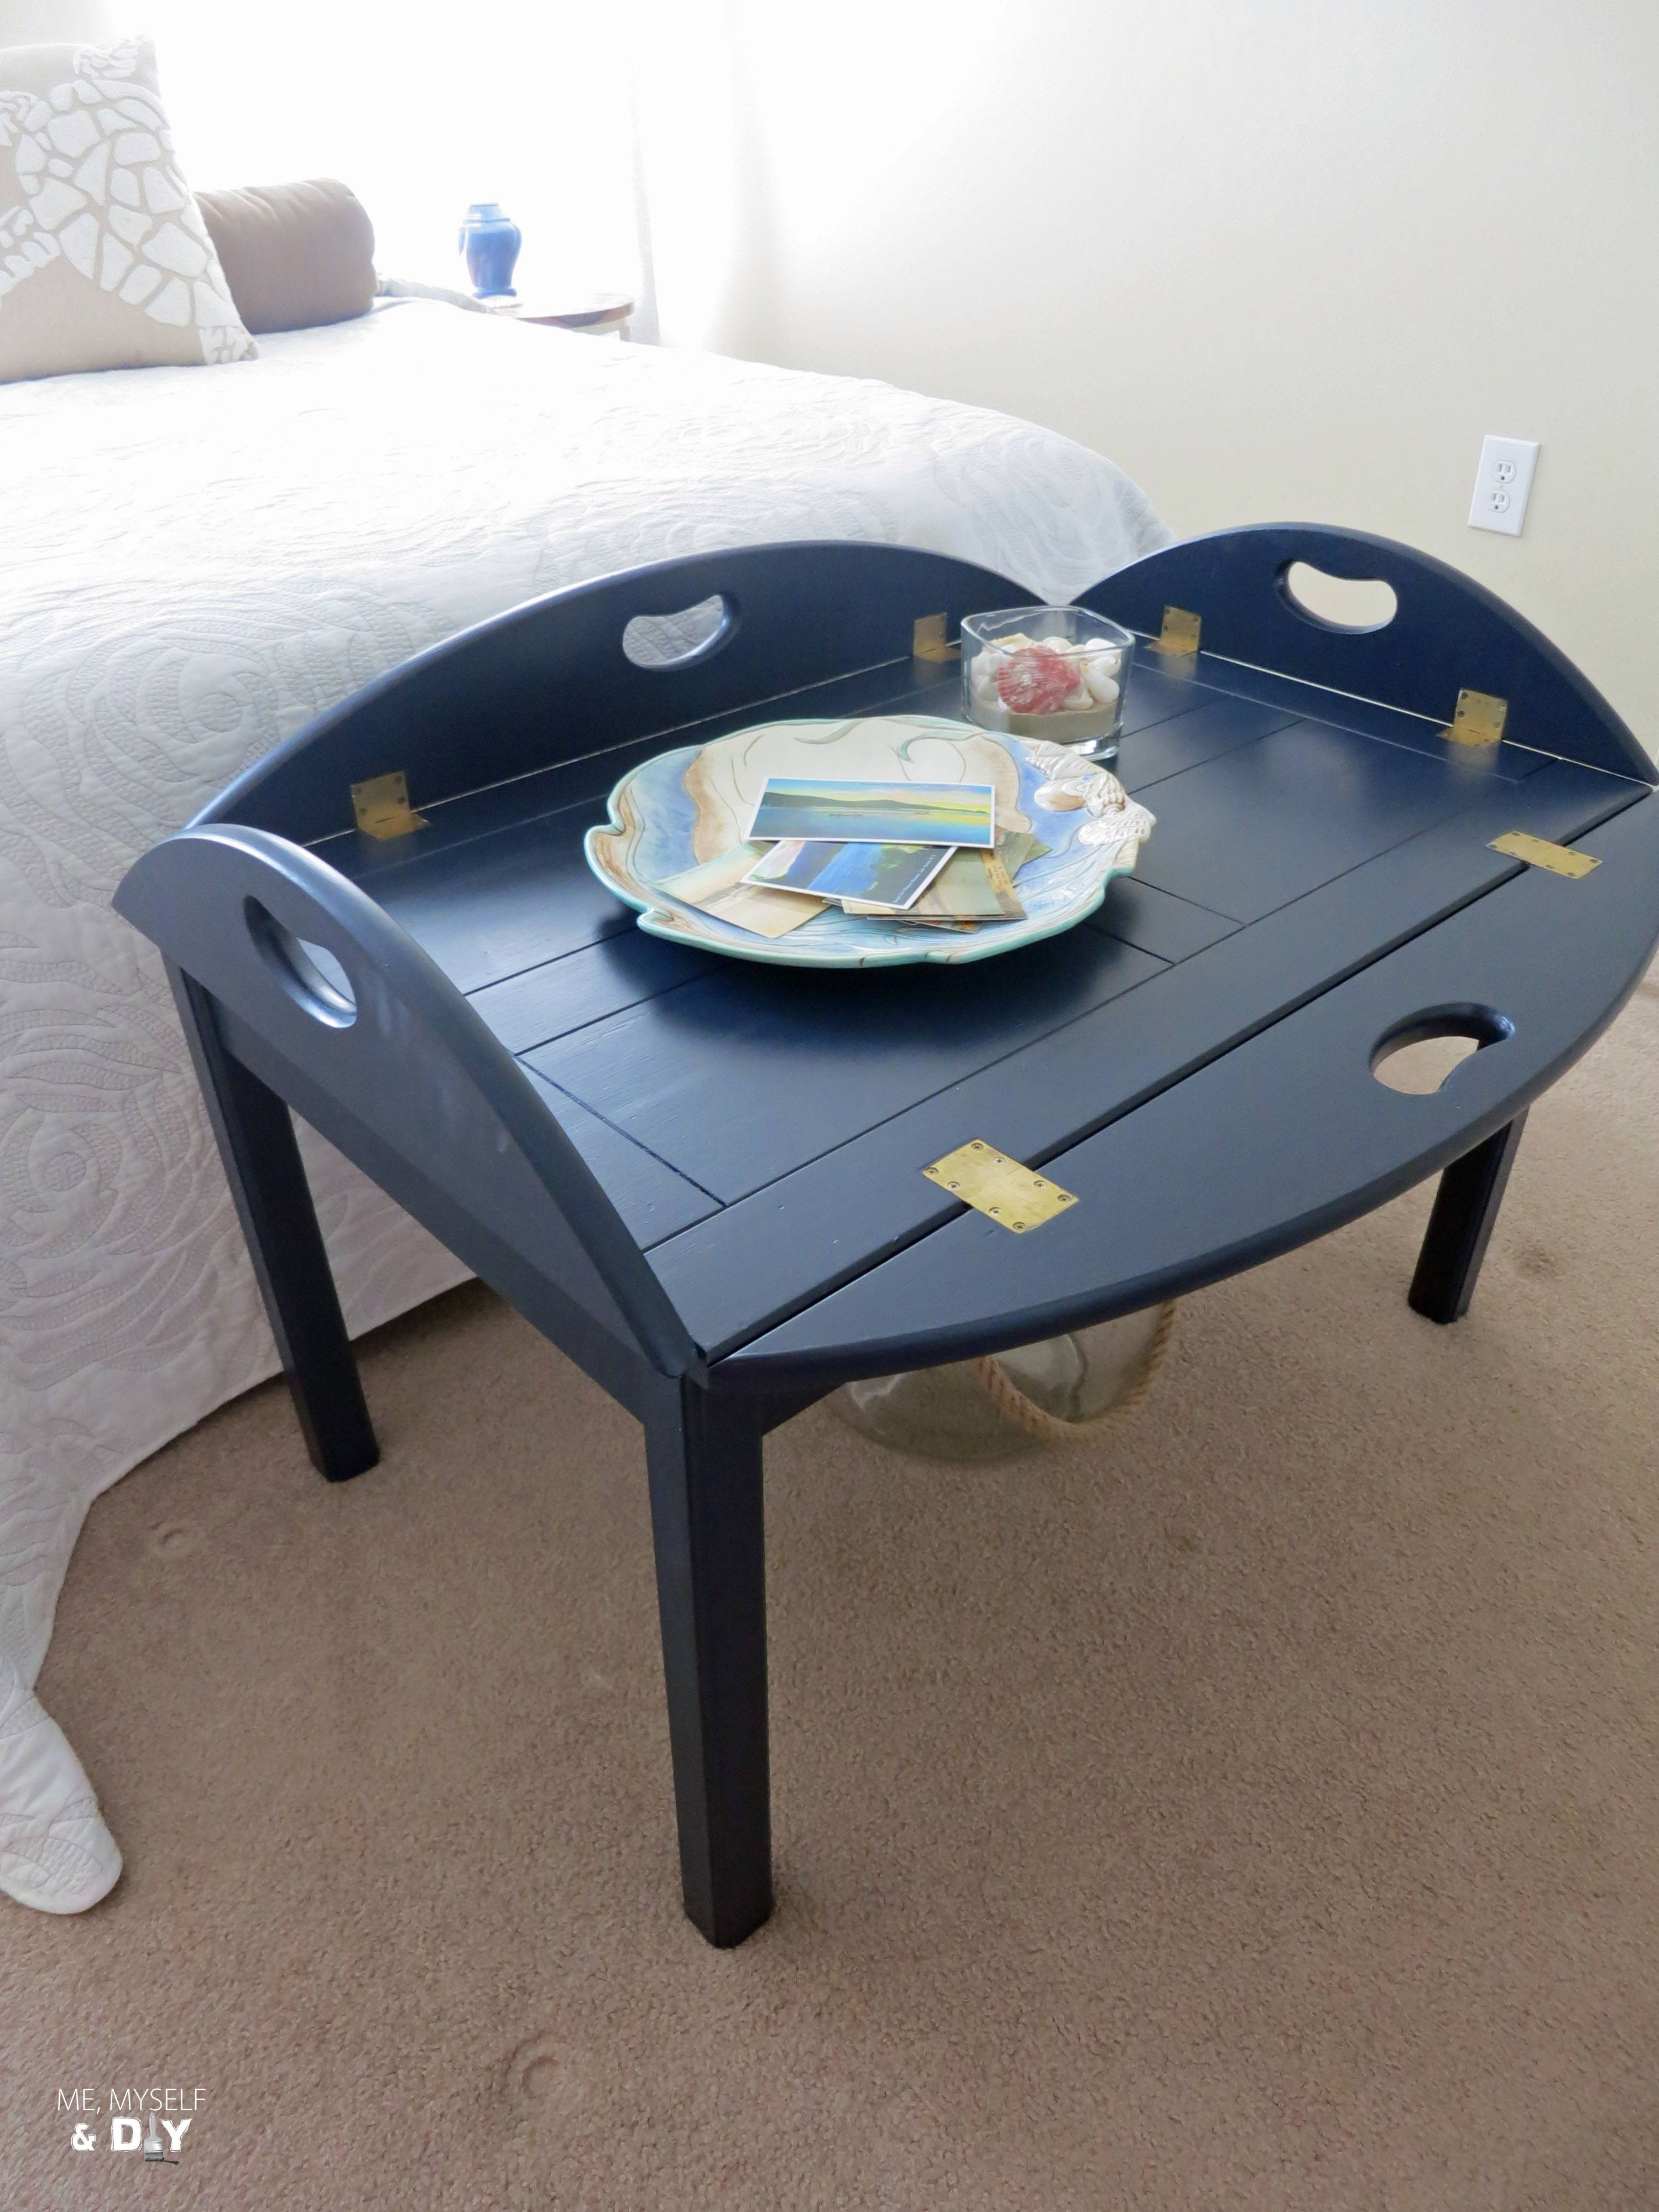 Am I Blue? The Coffee Table | Me, Myself & Diy with Blue Coffee Tables (Image 2 of 30)